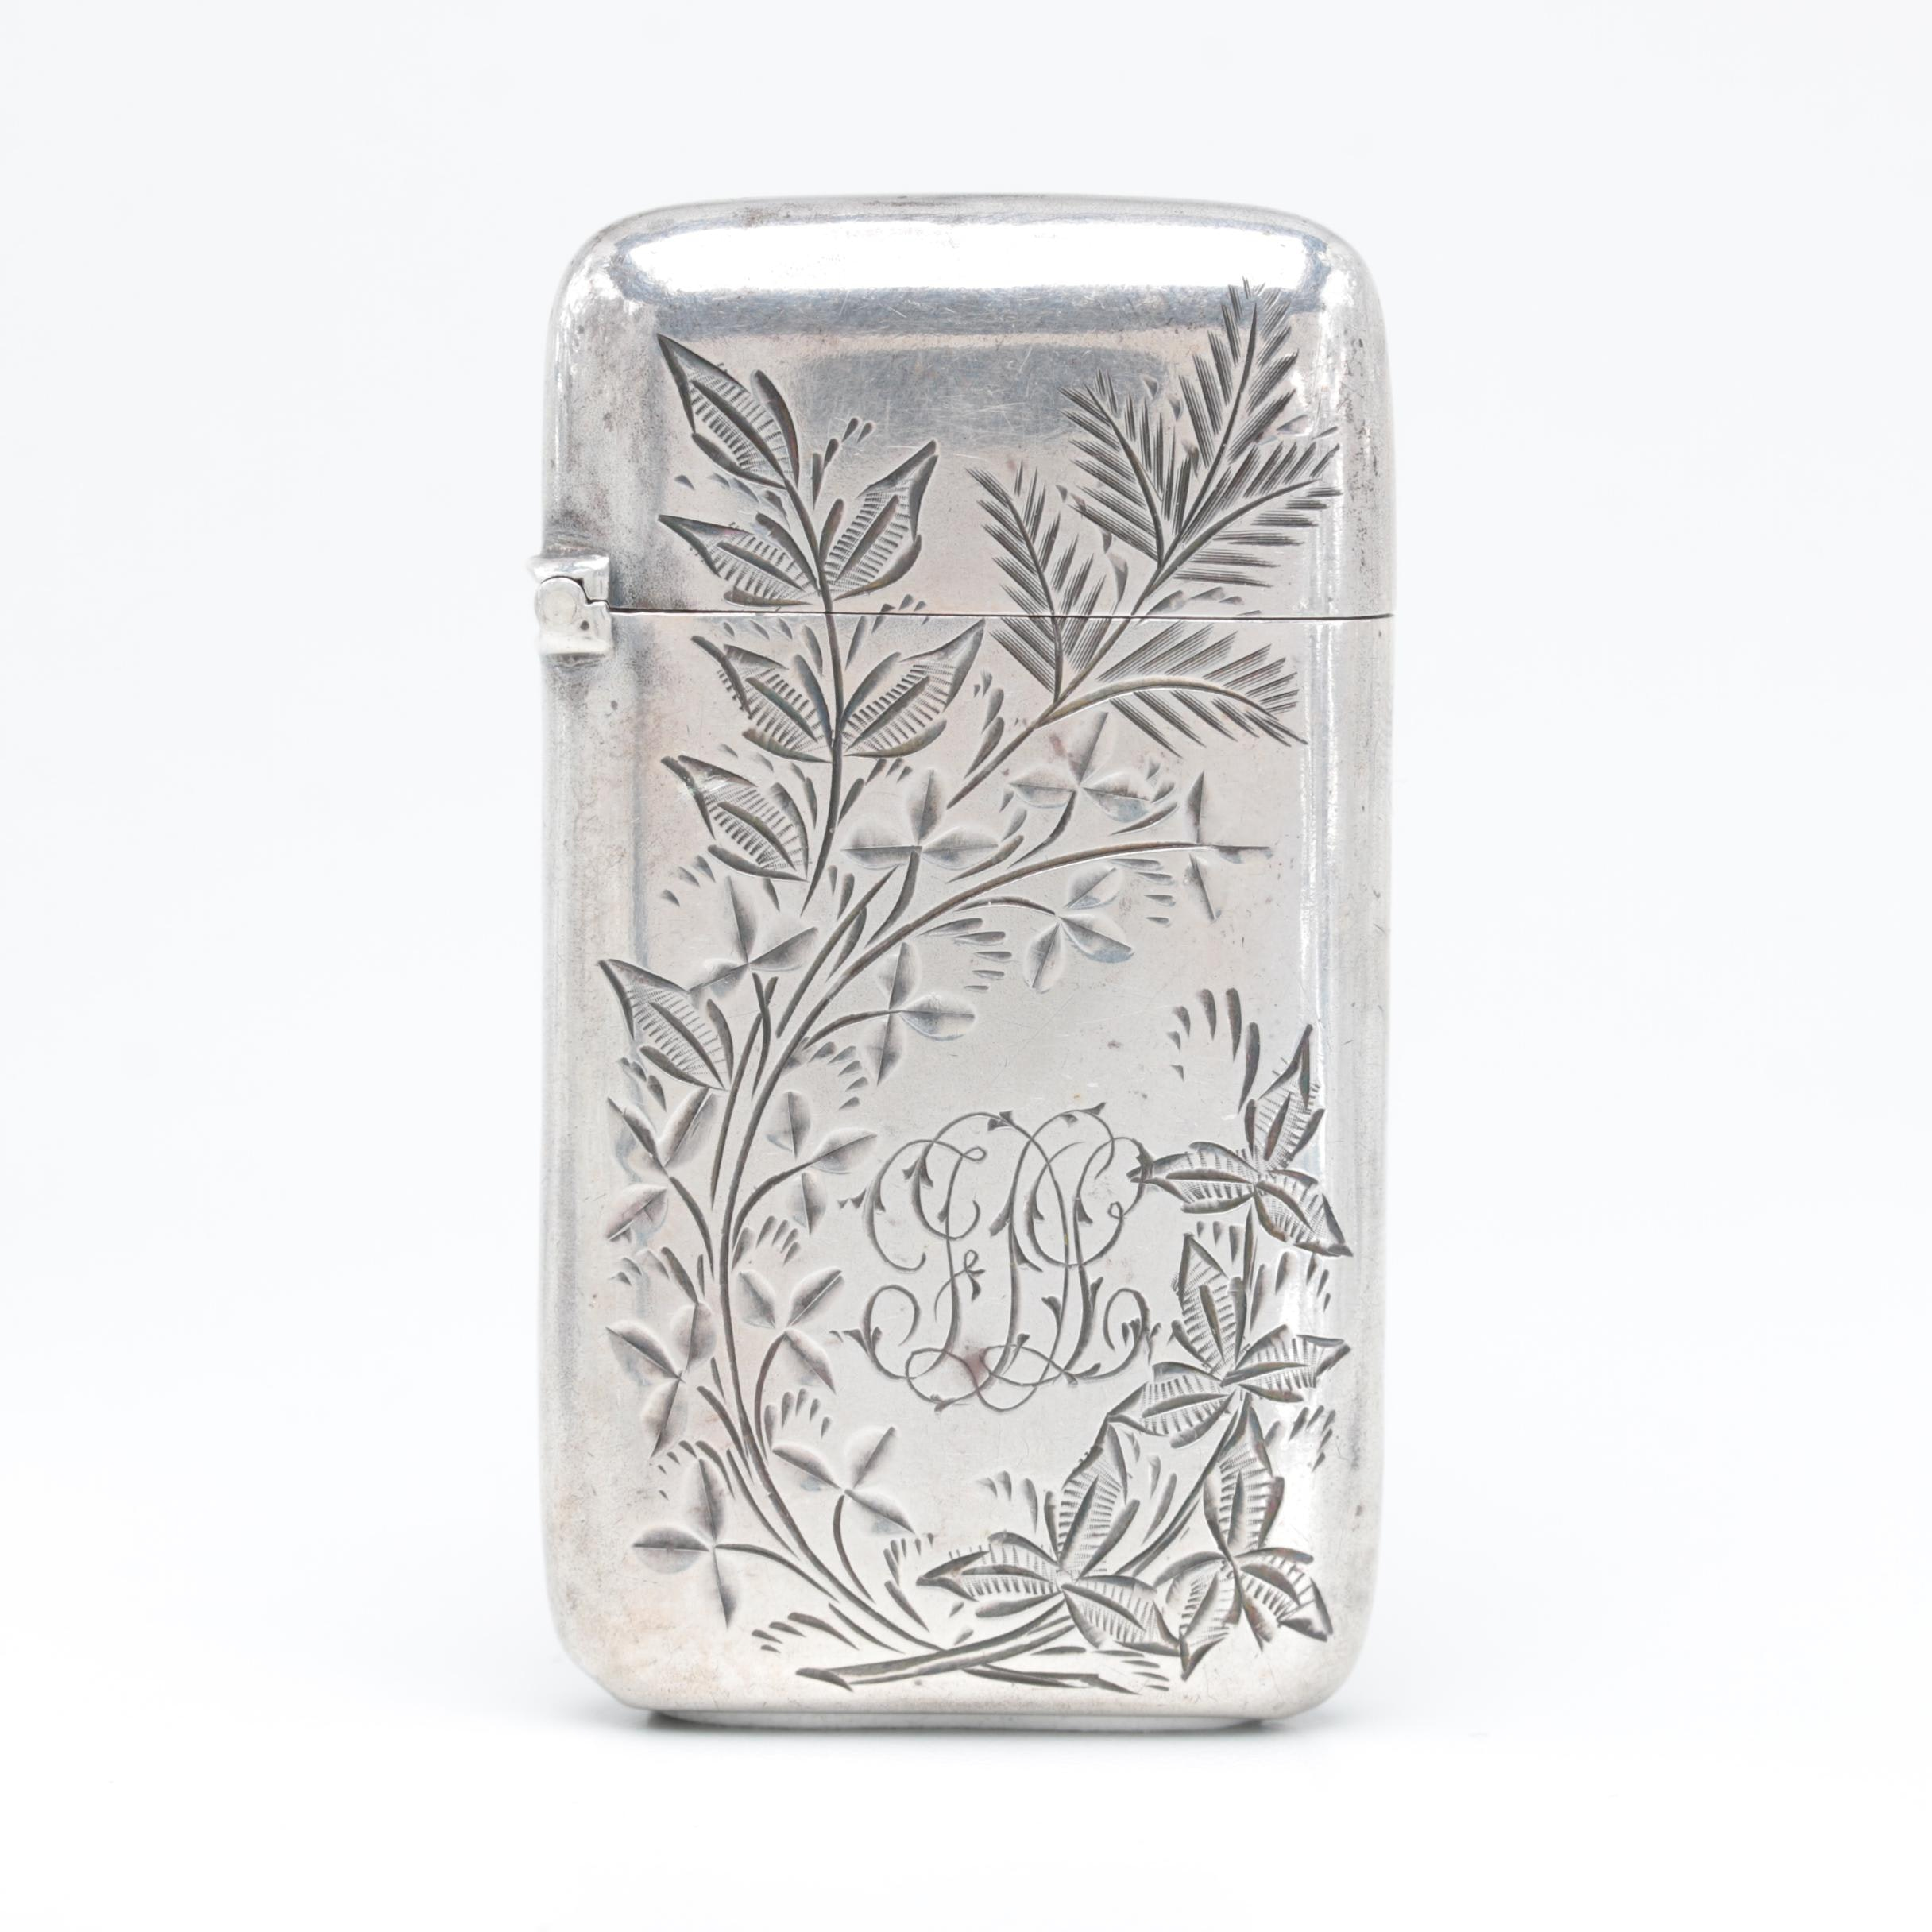 Vintage Frank M. Whiting & Co. Sterling Silver Engraved Match Case